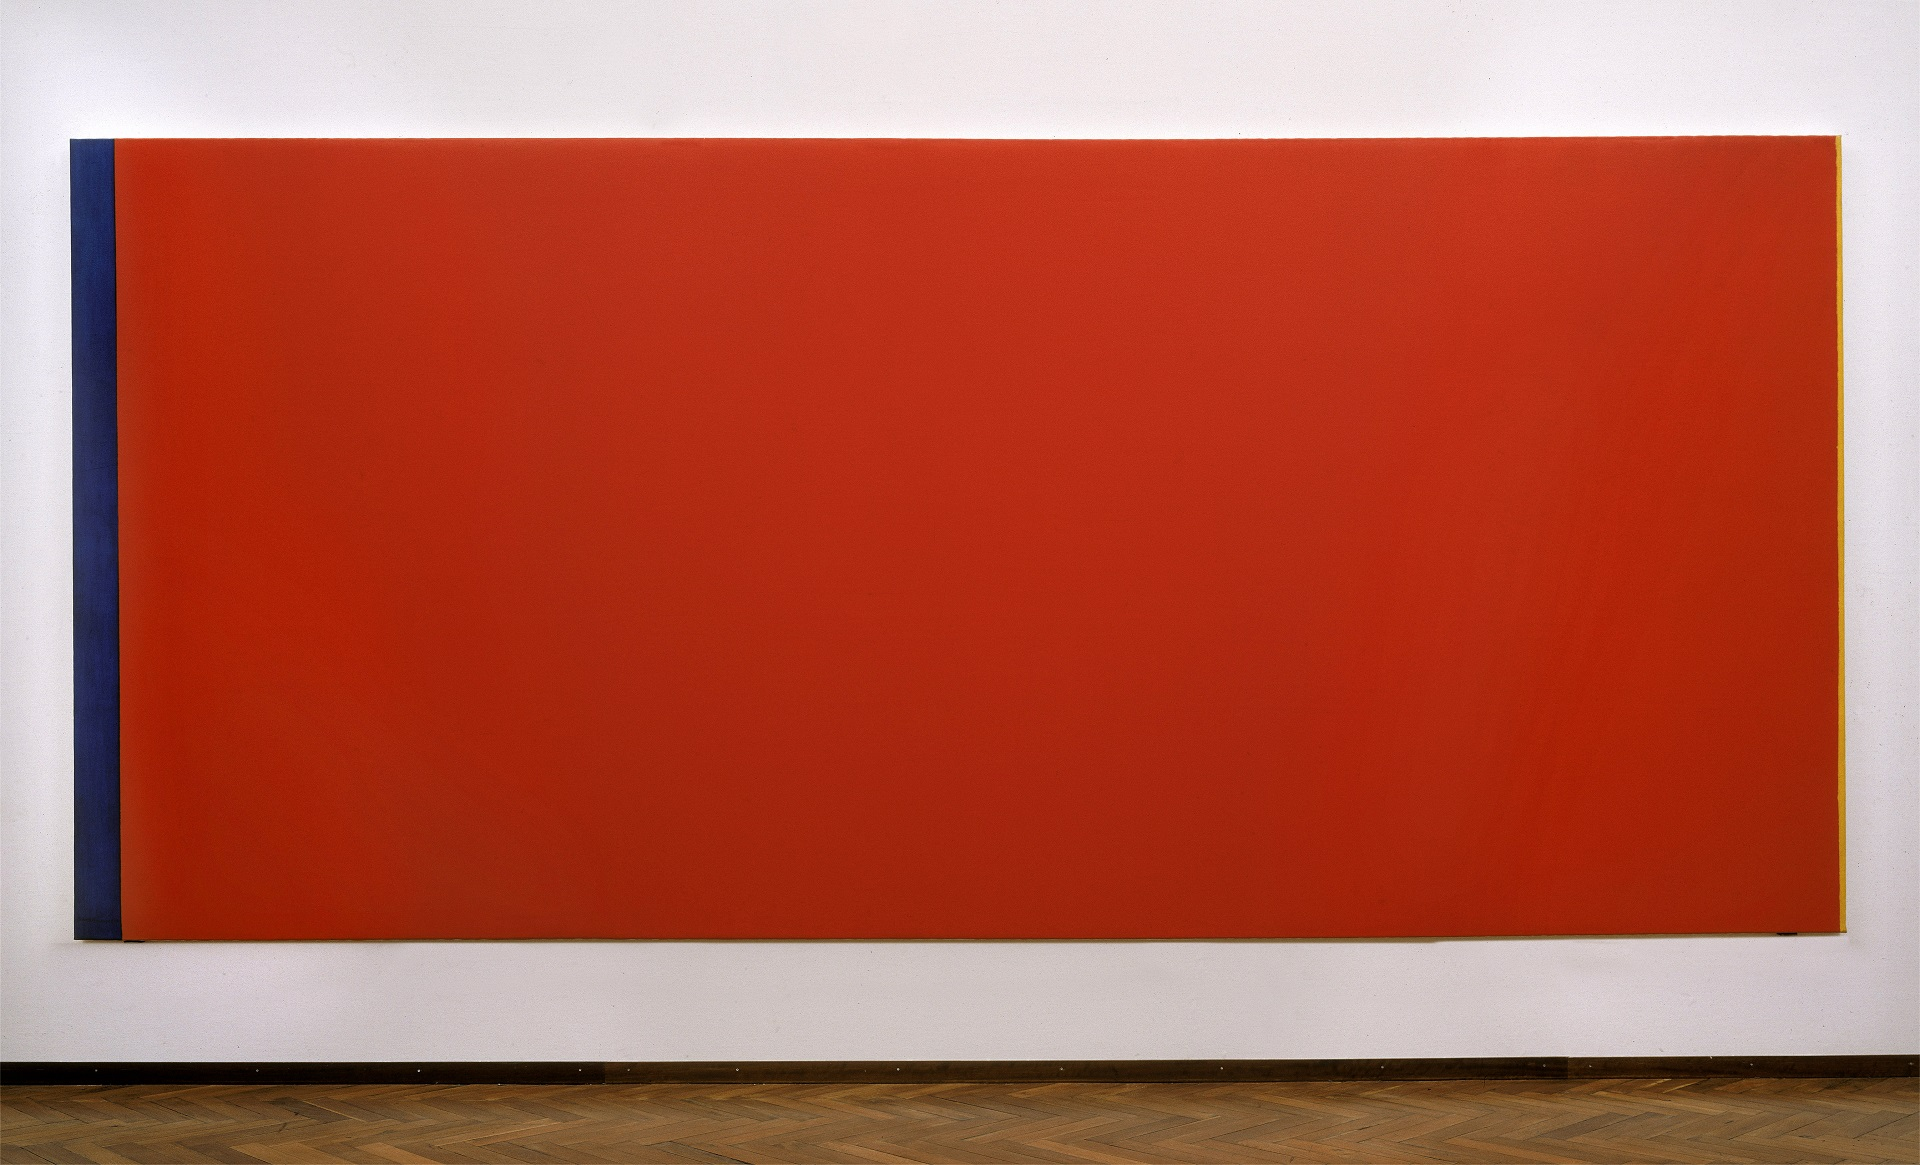 Barnett Newman, Who's Afraid of Red, Yellow and Blue III (1967-68), collectie Stedelijk Museum Amsterdam